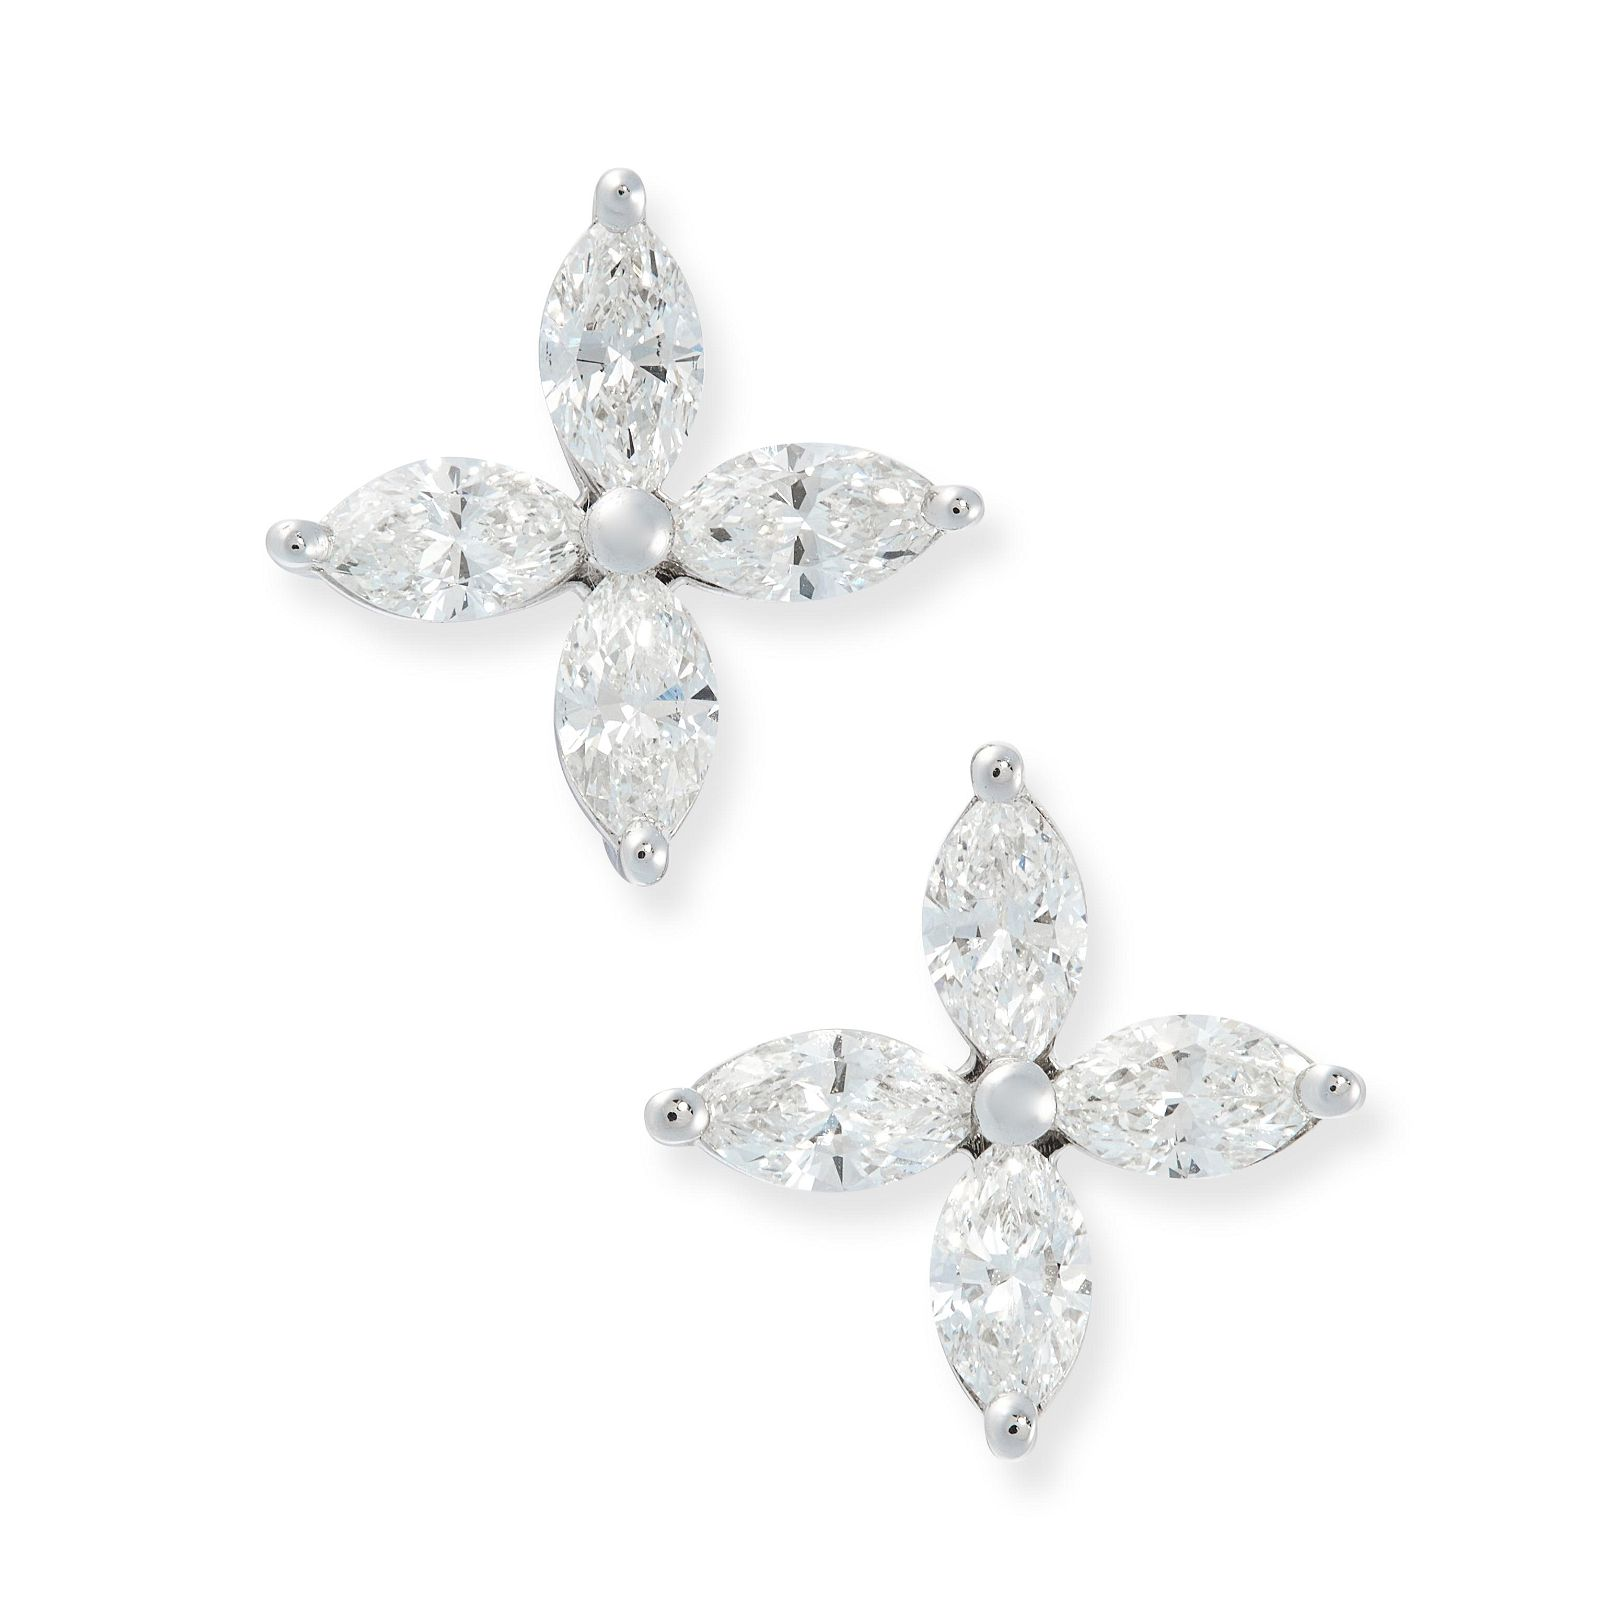 A PAIR OF VICTORIA DIAMOND STUD EARRINGS, TIFFANY & CO